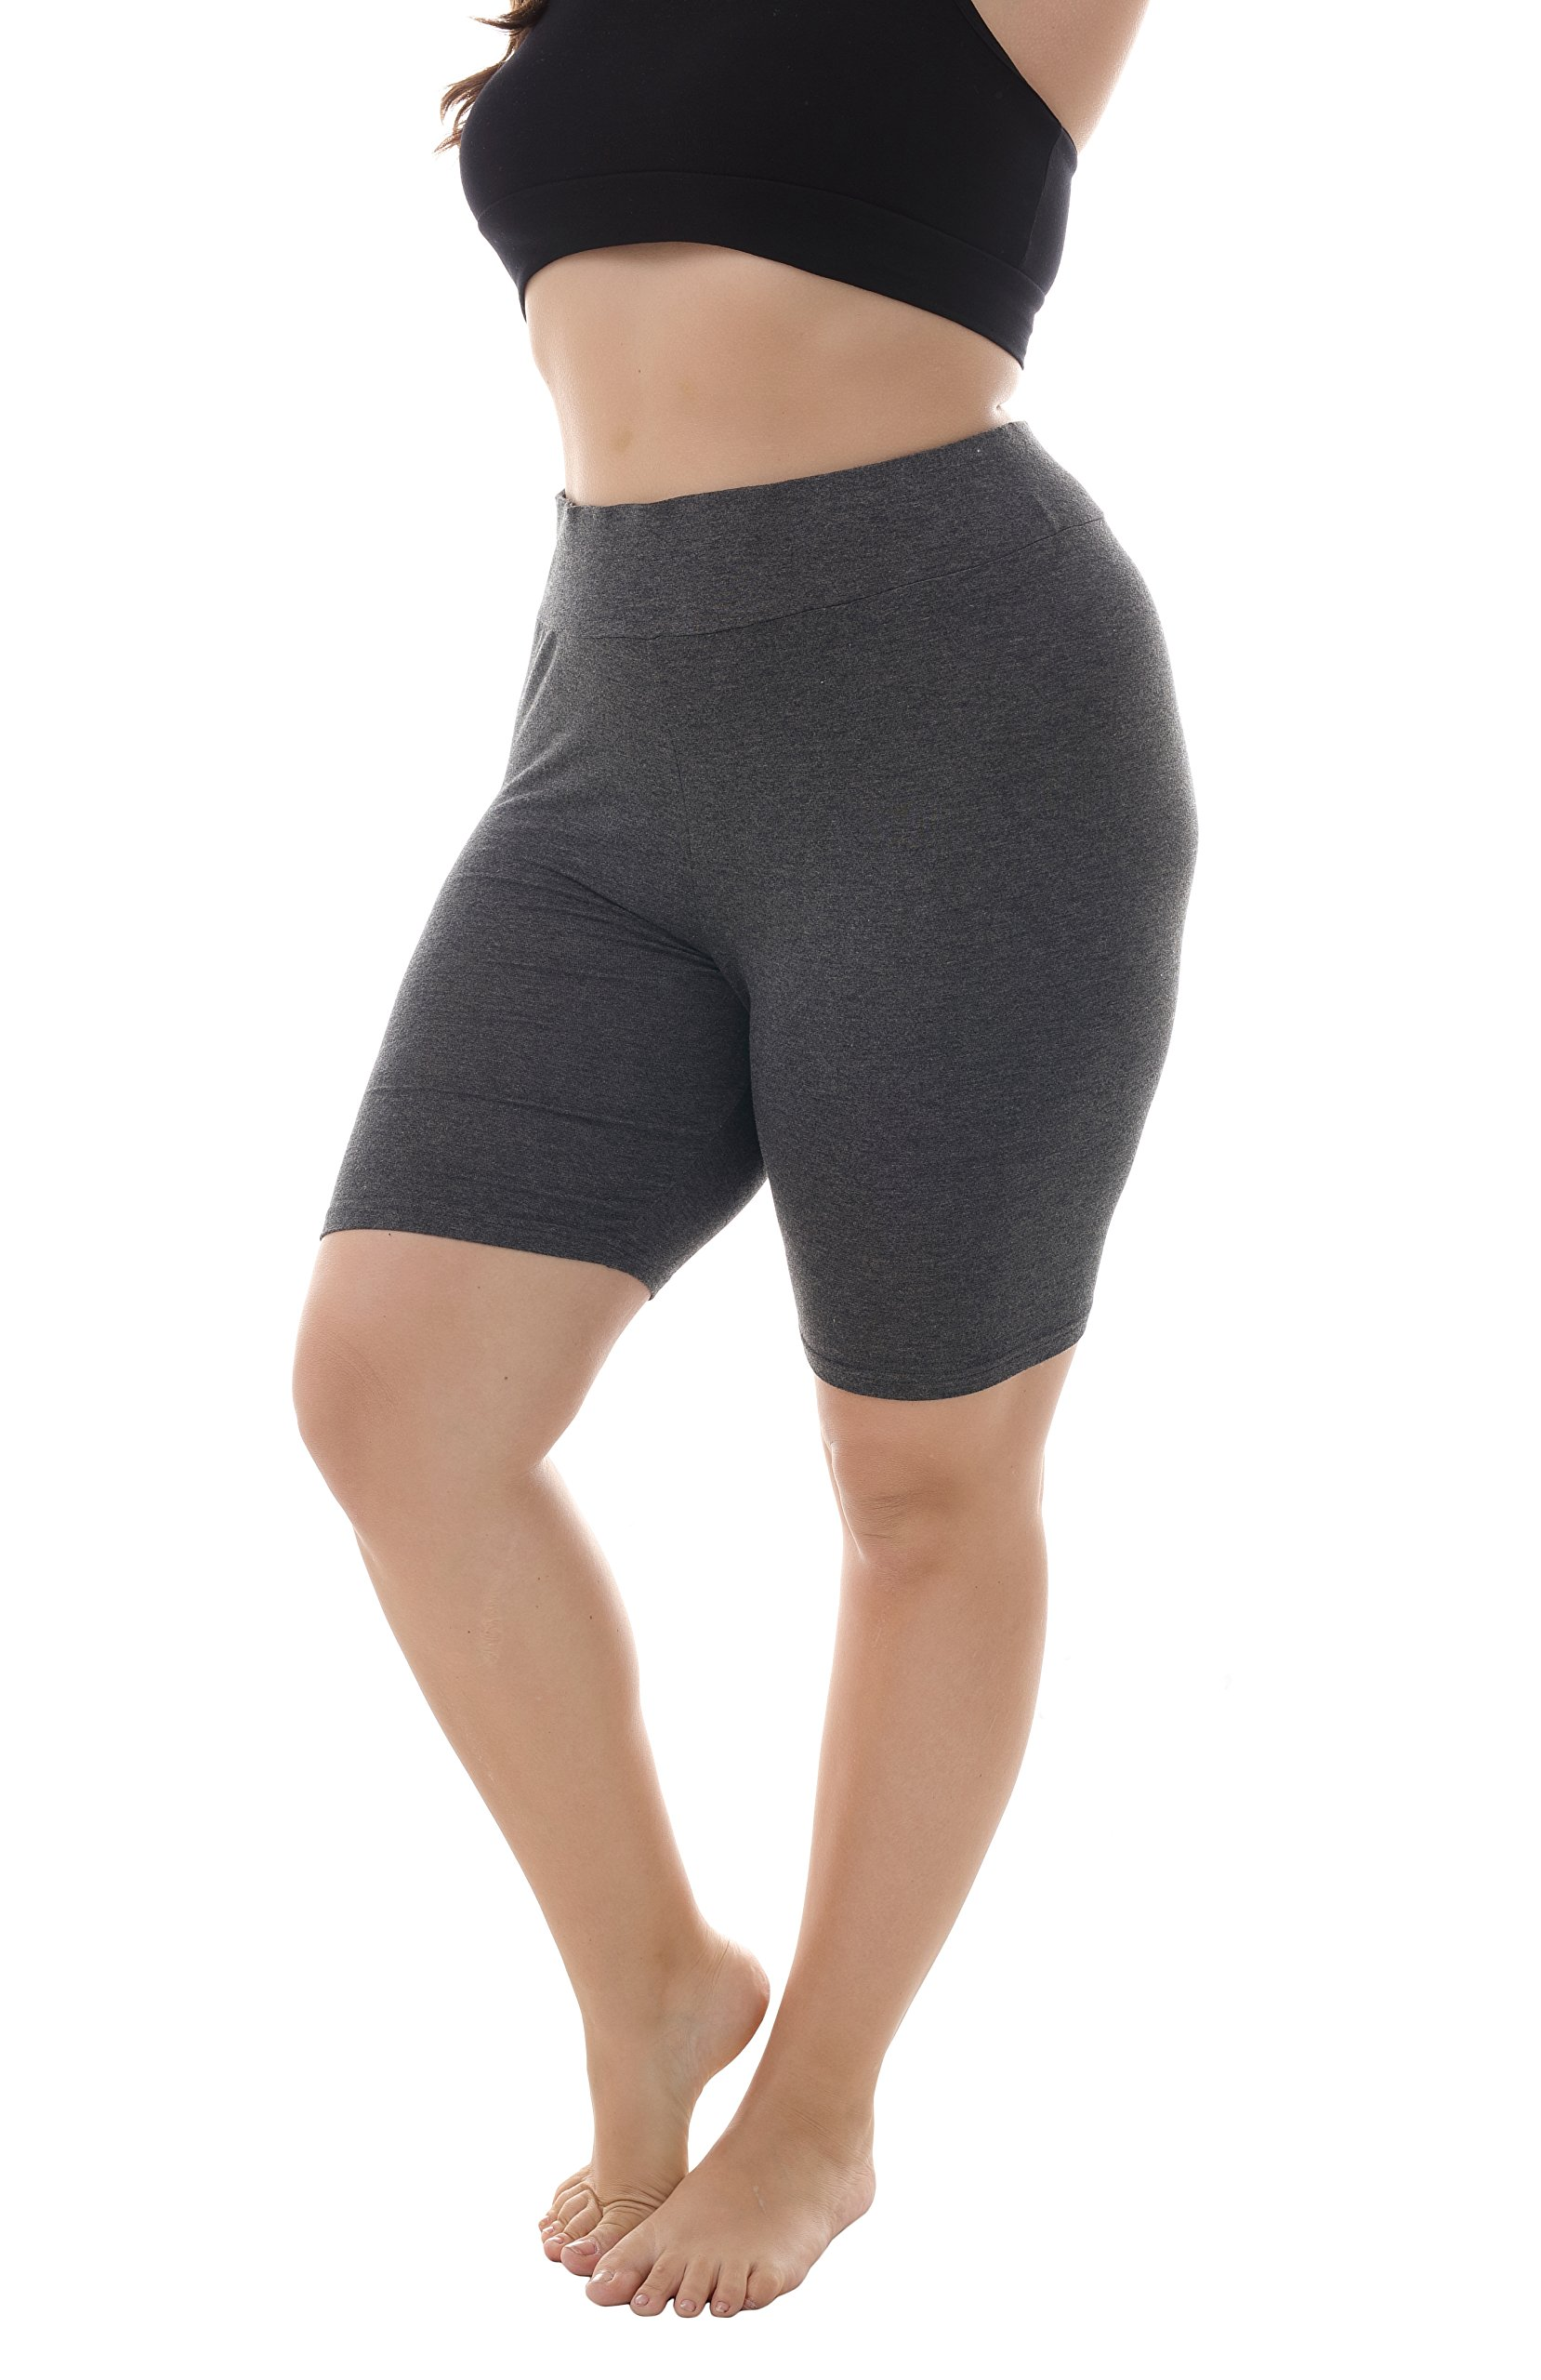 ZERDOCEAN Women's Plus Size Modal High Waist Short Leggings for Summer Dark Gray 4X